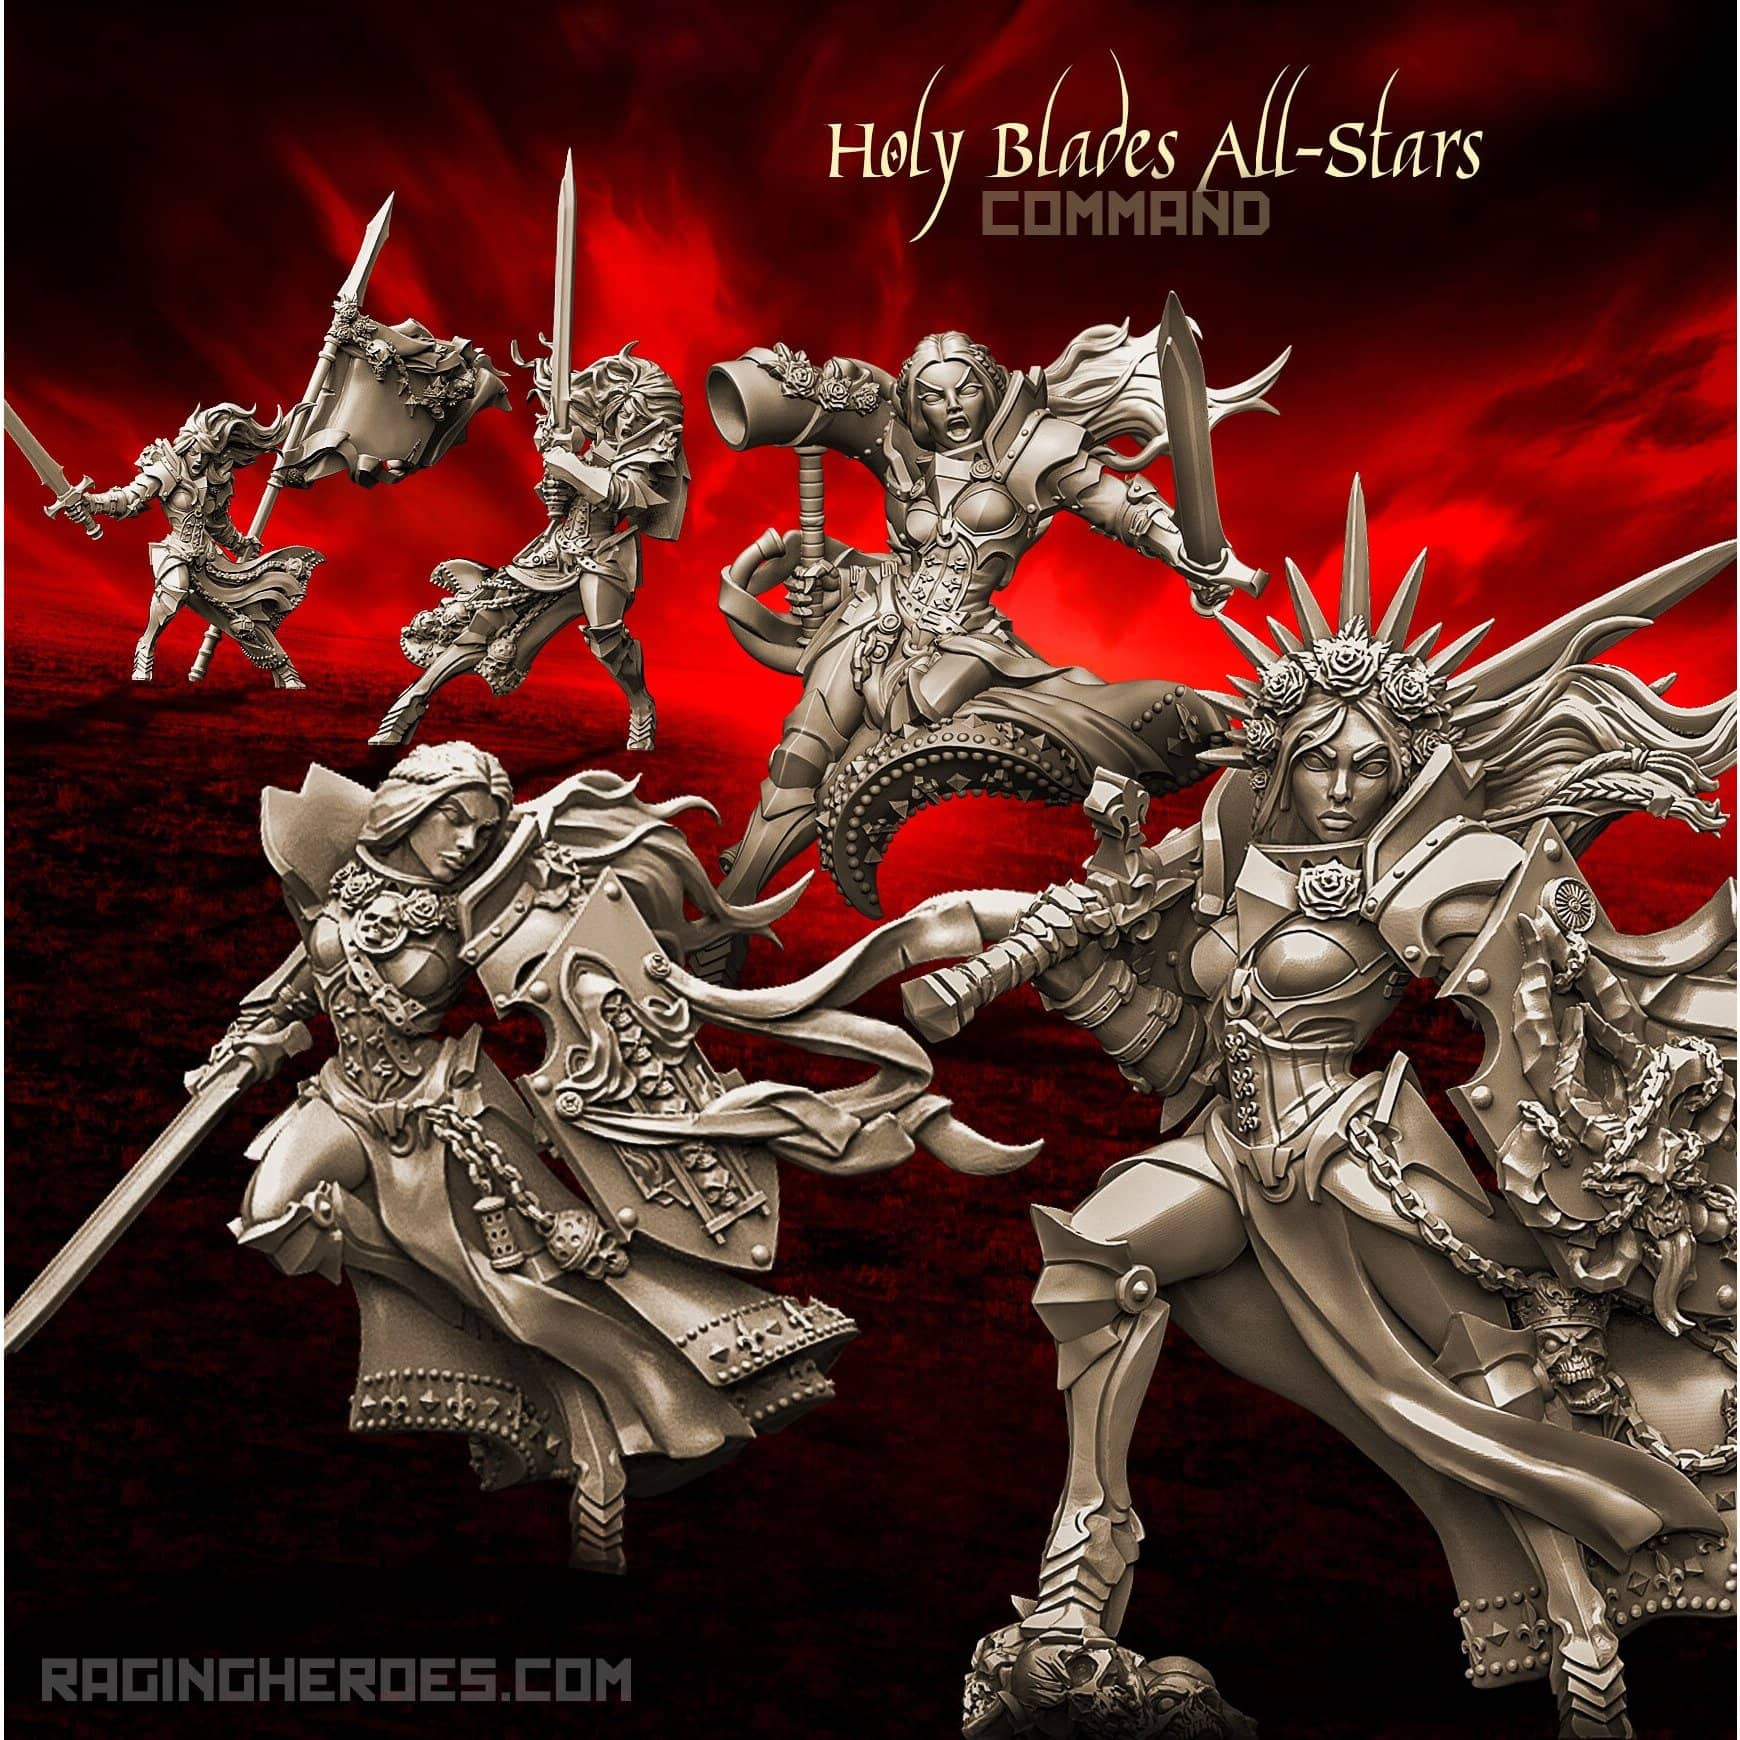 Holy Blades All-Stars - COMMAND Group (SotO - F) - Raging Heroes